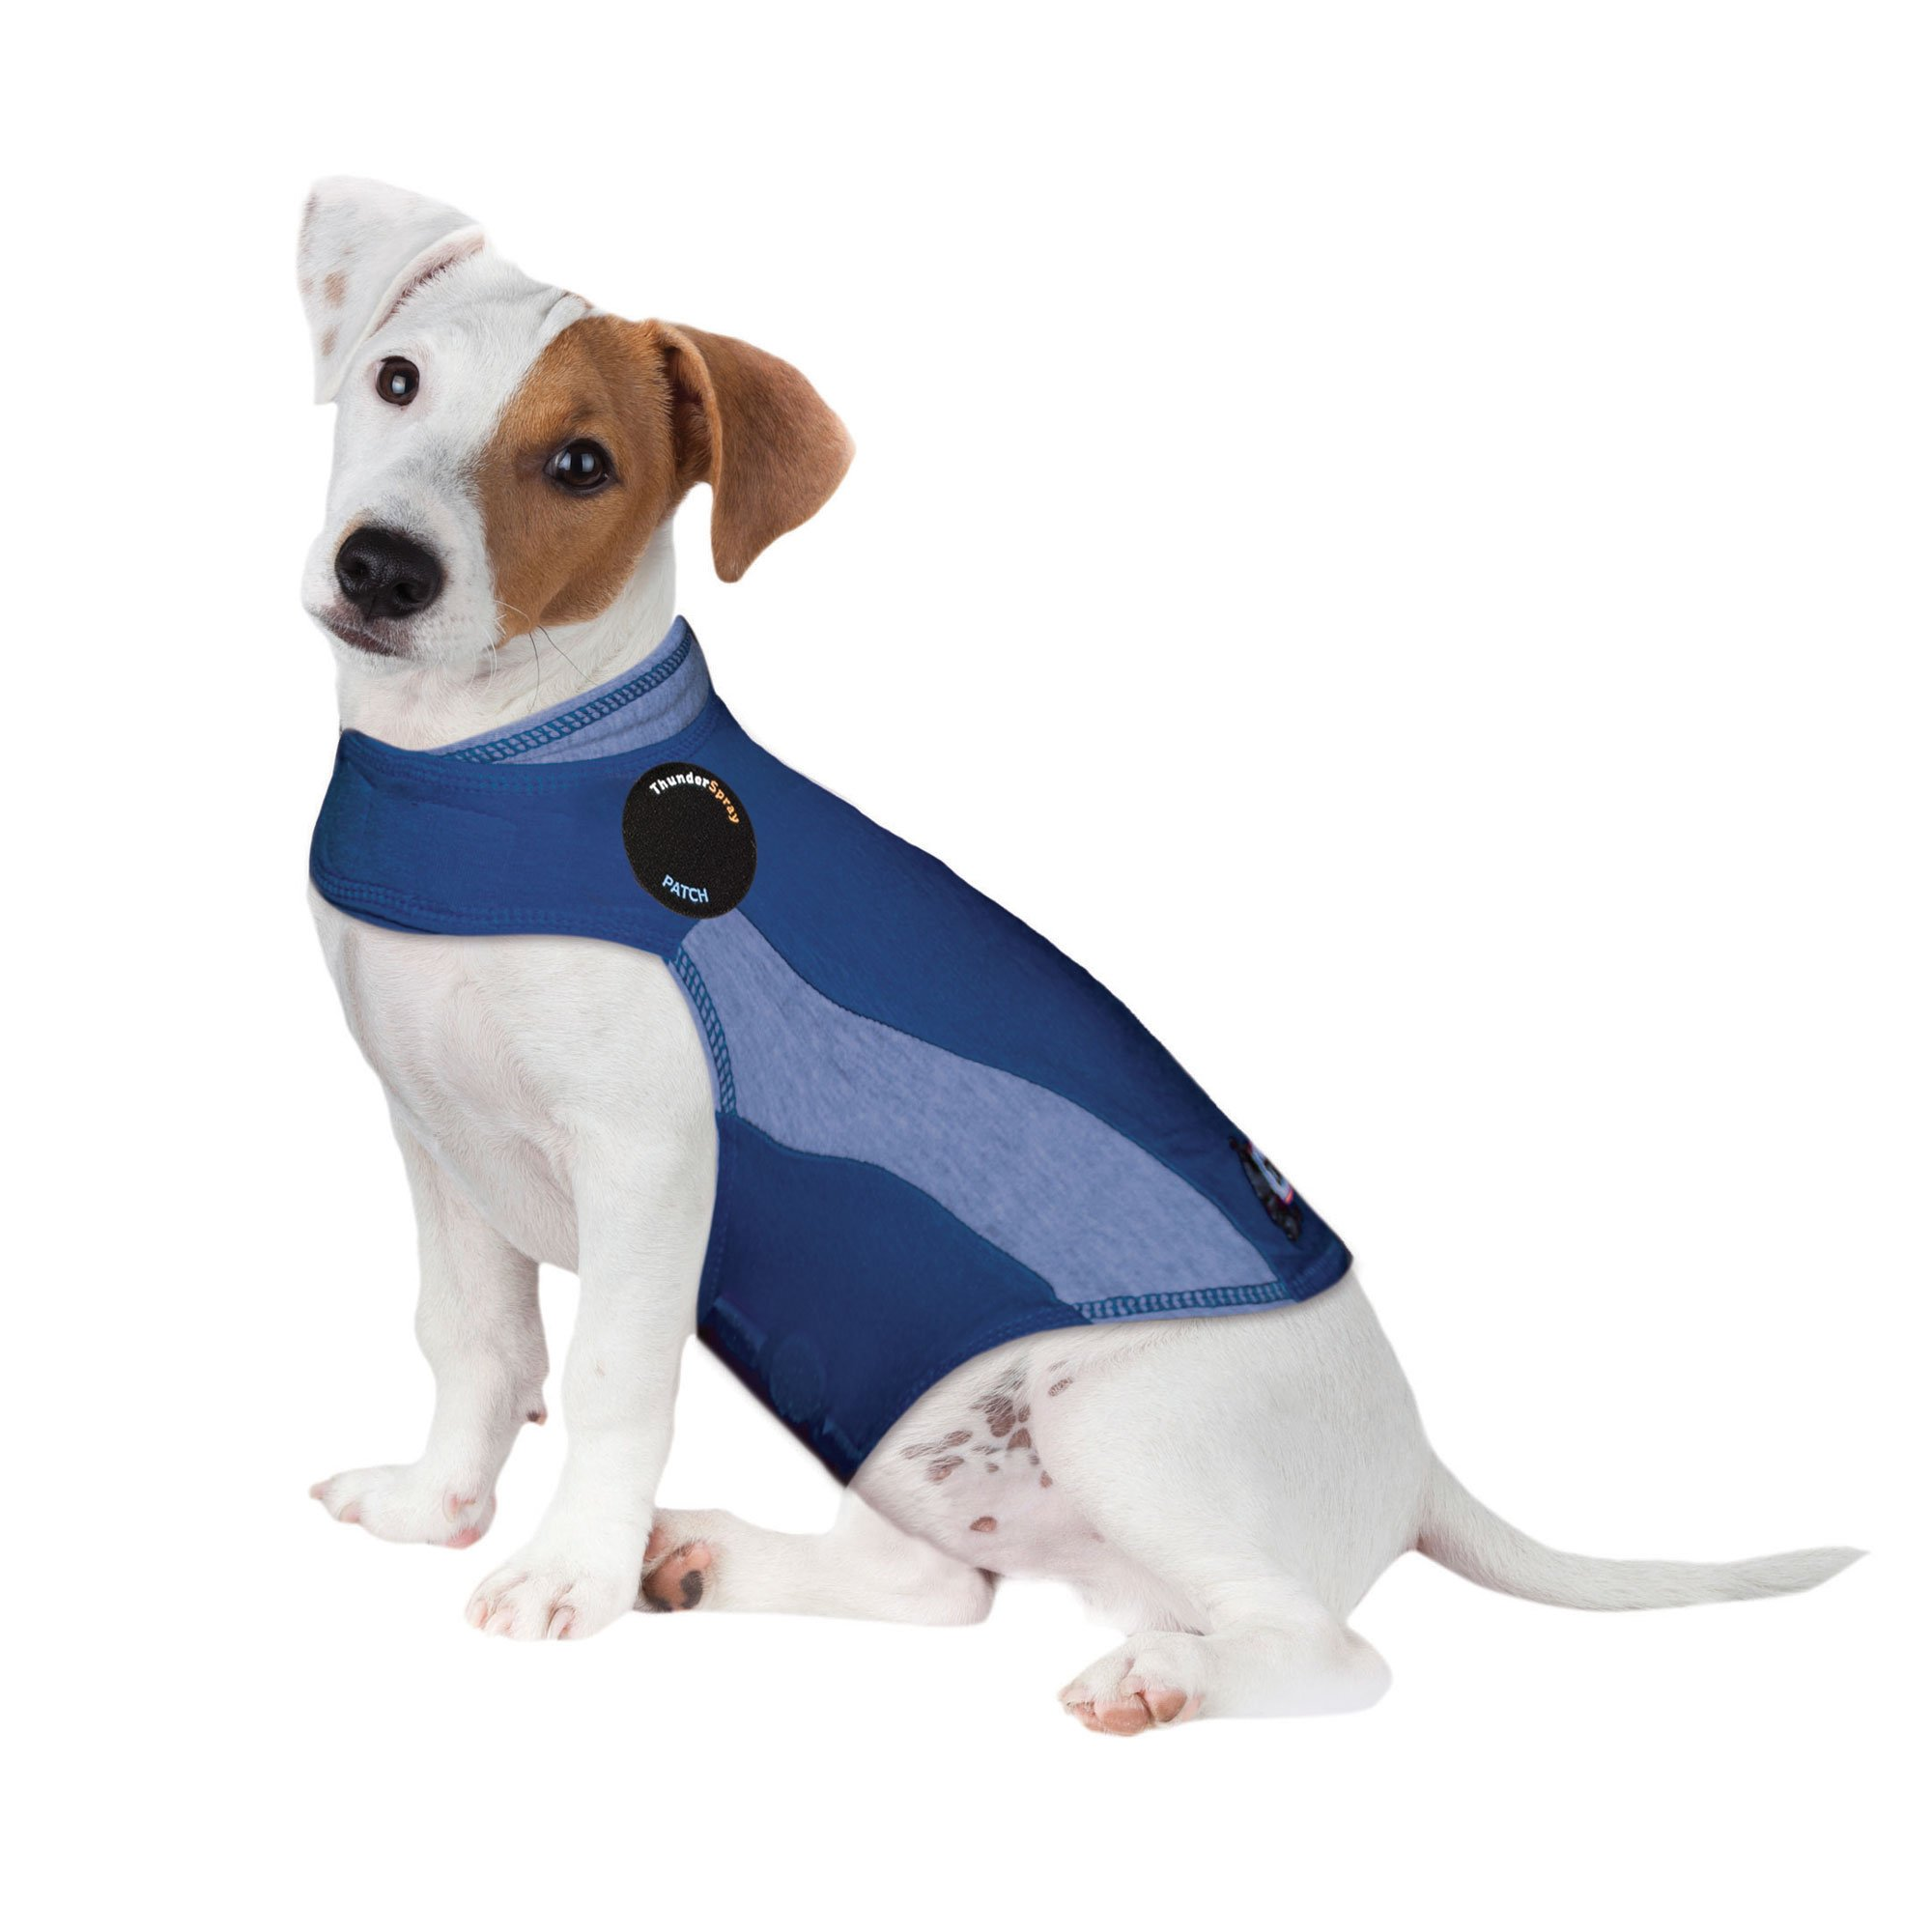 ThunderShirt Polo Dog Anxiety Jacket | Vet Recommended Calming Solution Vest for Fireworks, Thunder, Travel, & Separation | Blue, Small by Thundershirt